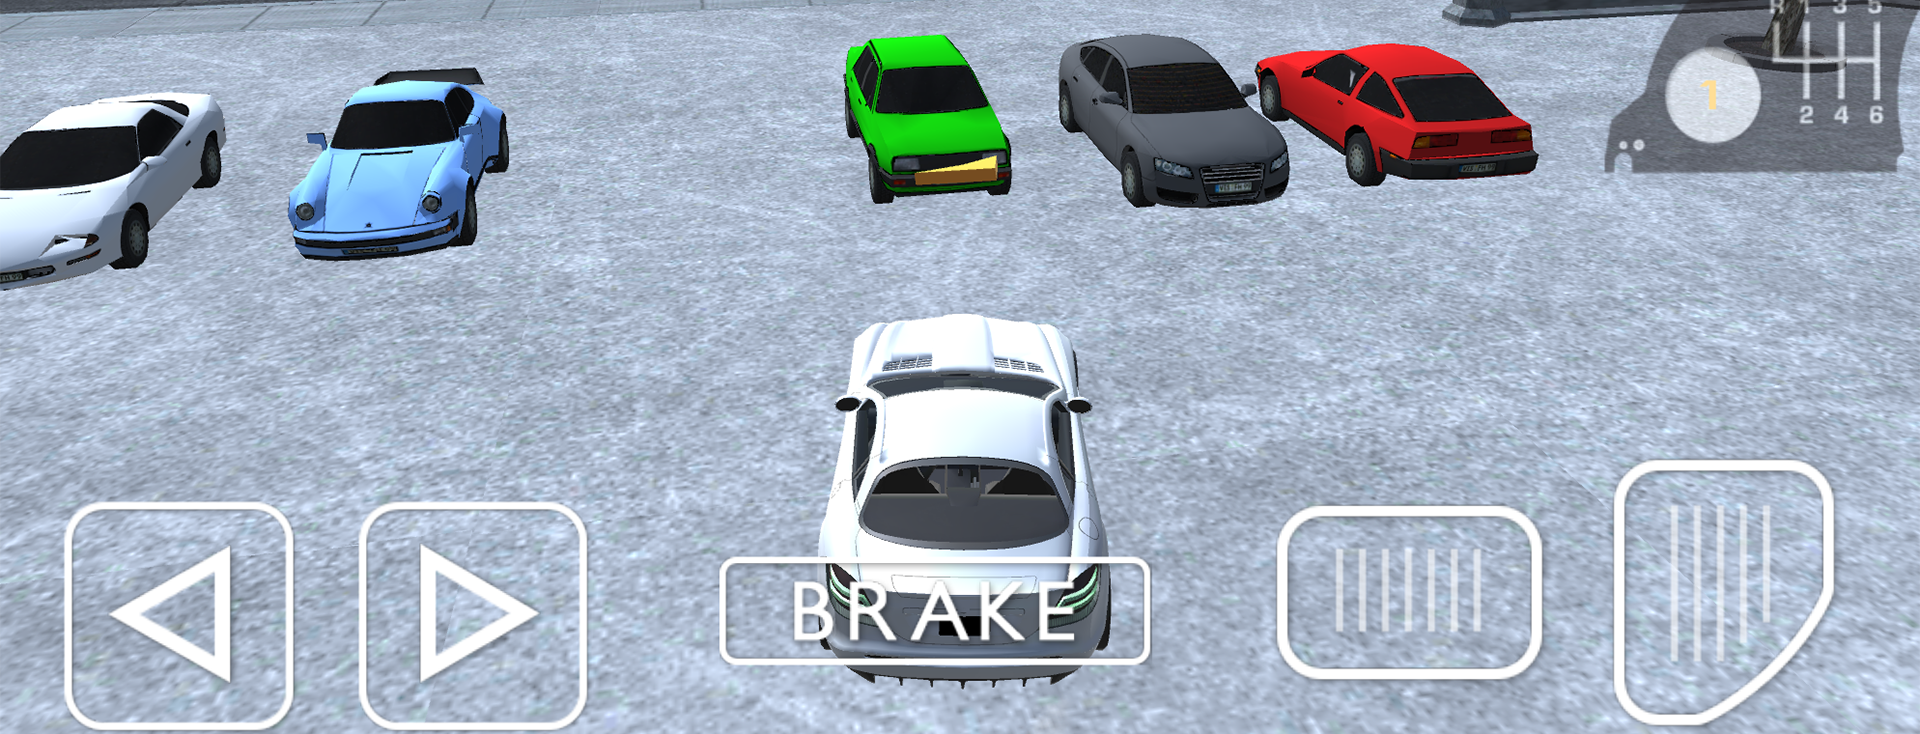 Car-Parking-Screenshot-2